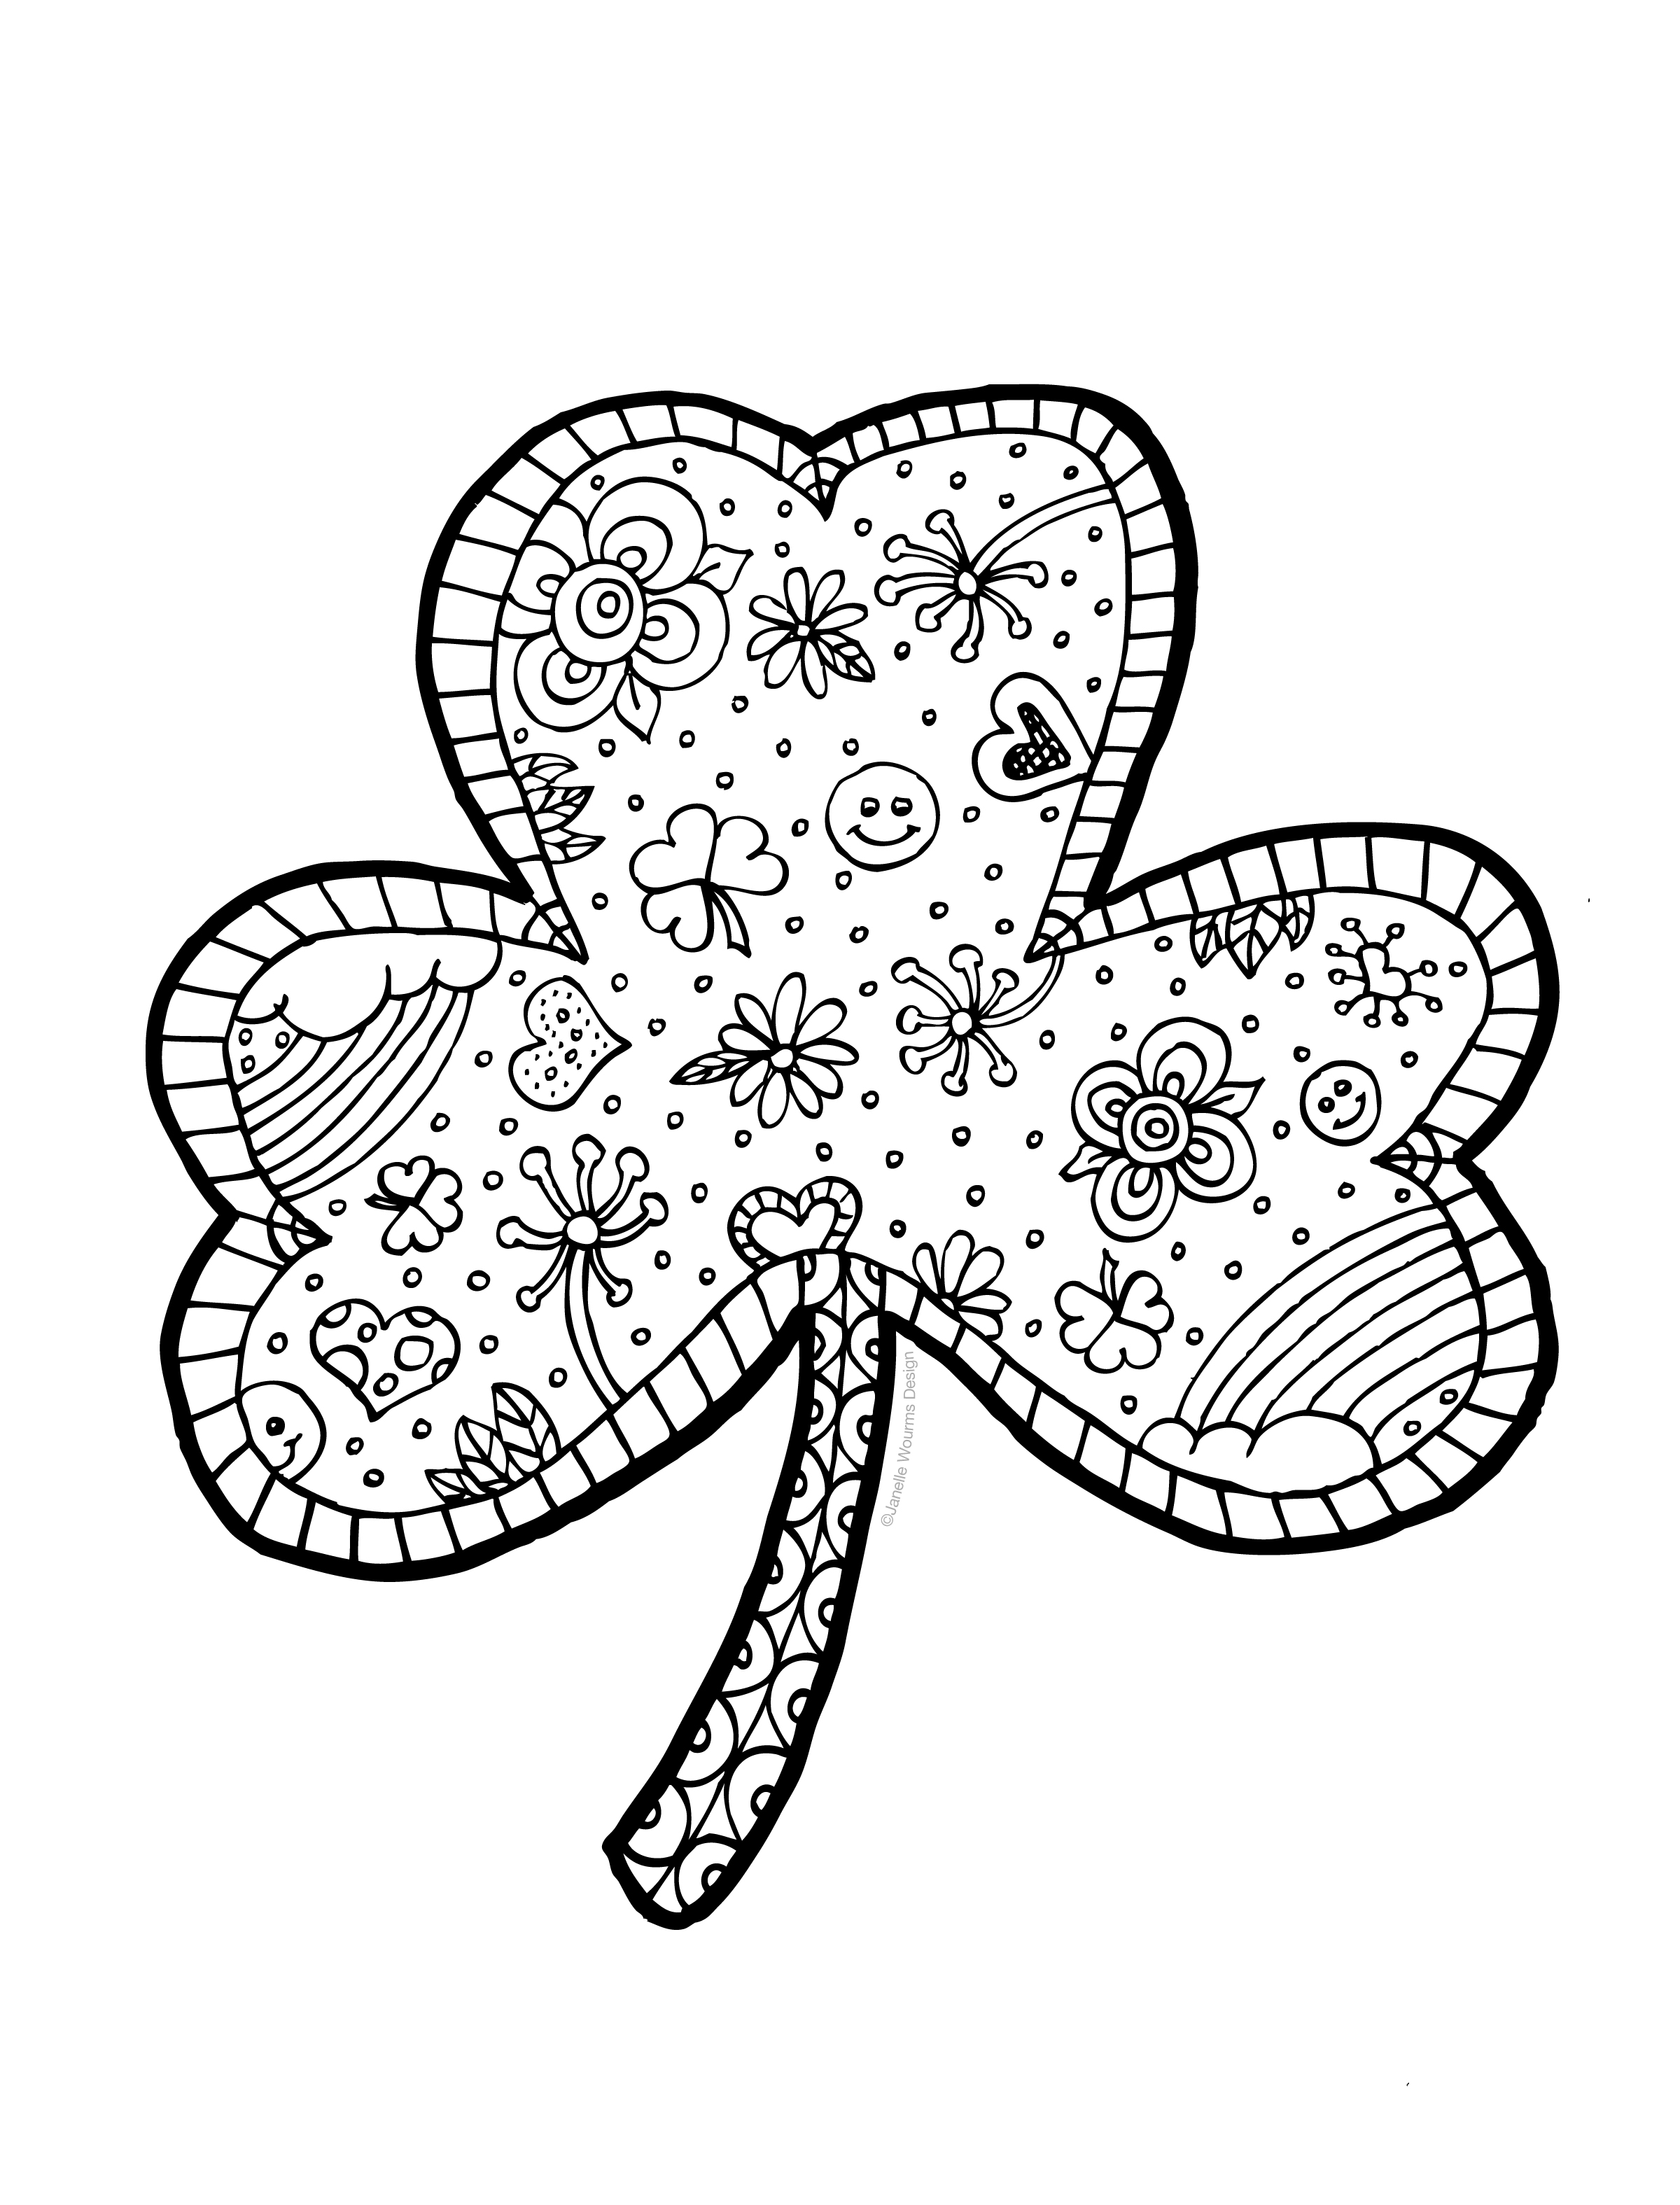 coloring shamrock get this free picture of shamrock coloring pages prmlr coloring shamrock